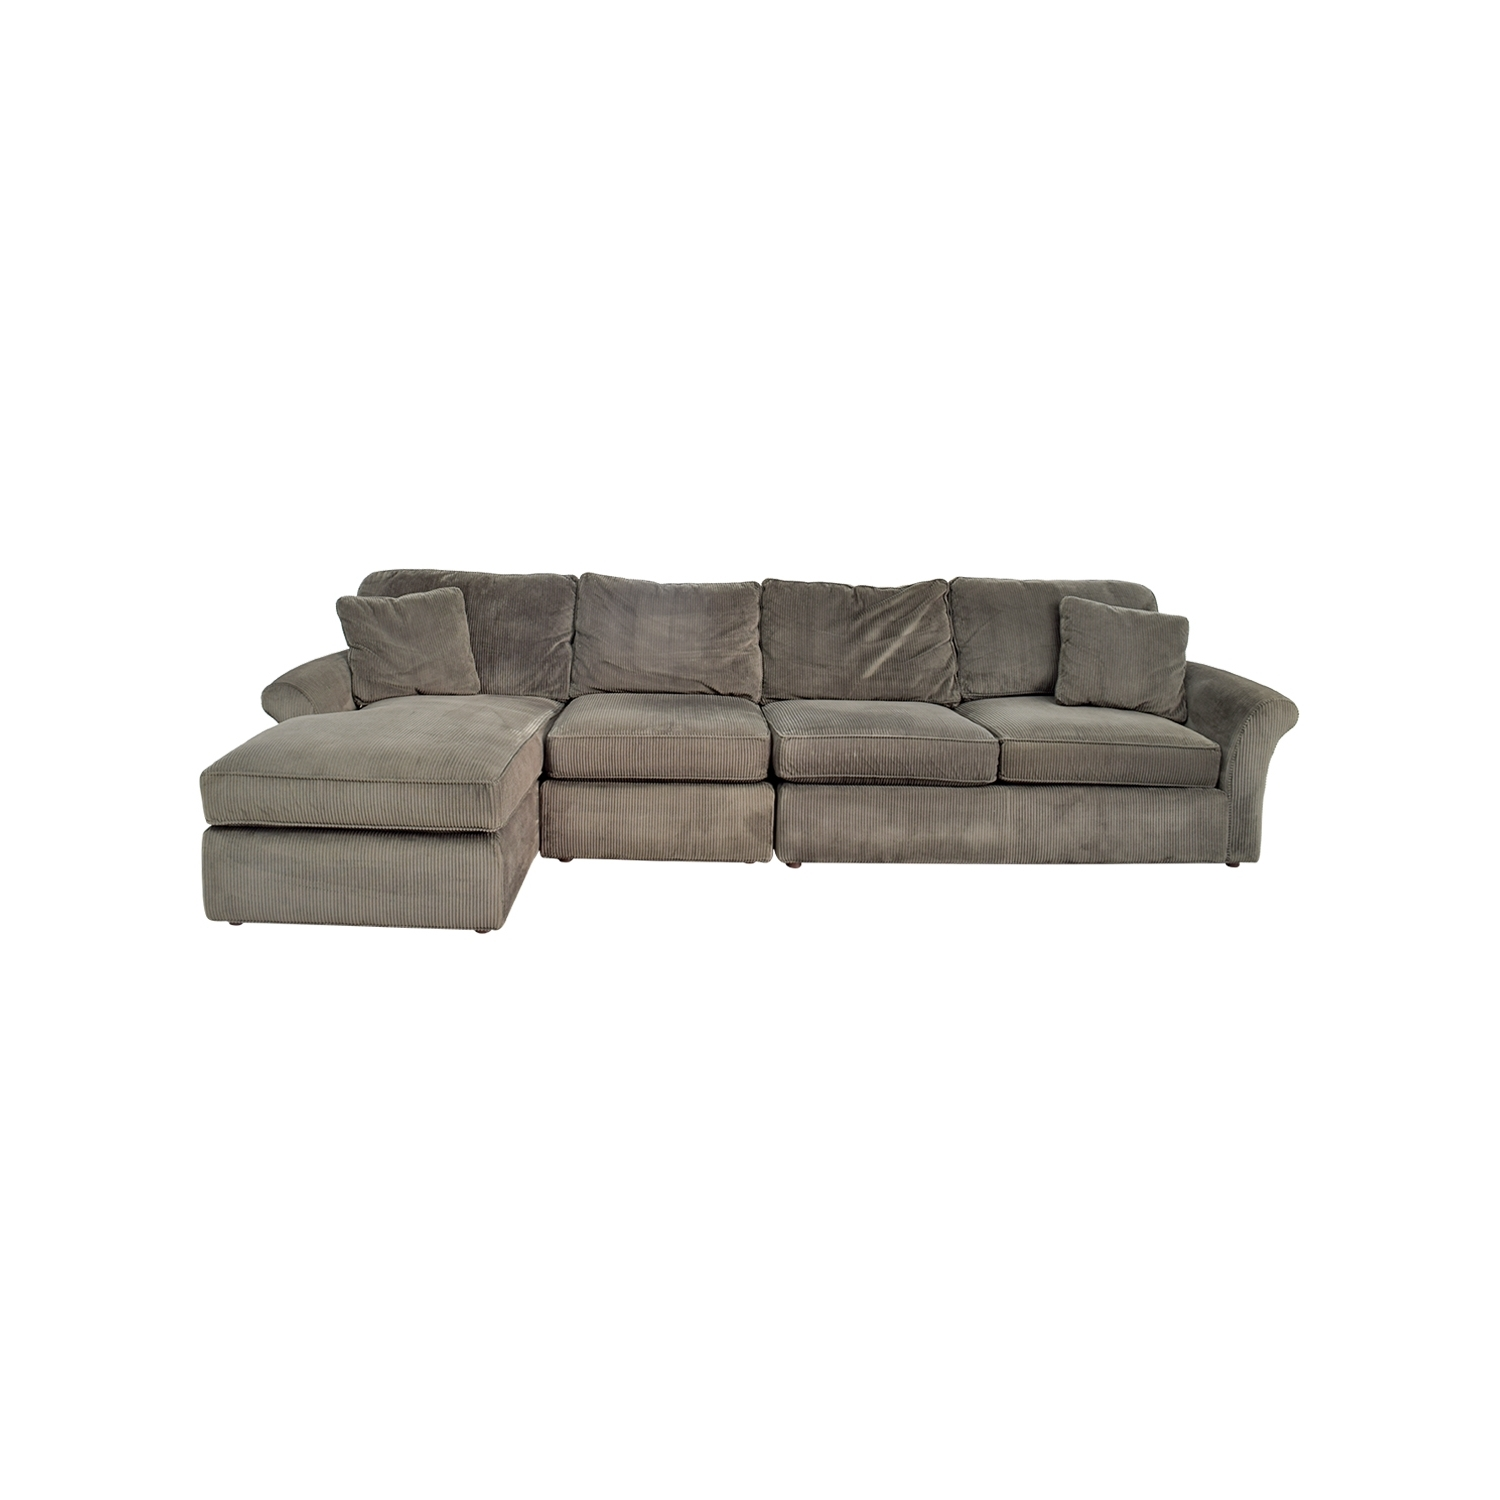 [%74% Off – Macy's Macy's Modern Concepts Charcoal Gray Corduroy For Most Up To Date Nj Sectional Sofas|nj Sectional Sofas Pertaining To Trendy 74% Off – Macy's Macy's Modern Concepts Charcoal Gray Corduroy|best And Newest Nj Sectional Sofas For 74% Off – Macy's Macy's Modern Concepts Charcoal Gray Corduroy|best And Newest 74% Off – Macy's Macy's Modern Concepts Charcoal Gray Corduroy Within Nj Sectional Sofas%] (View 18 of 20)